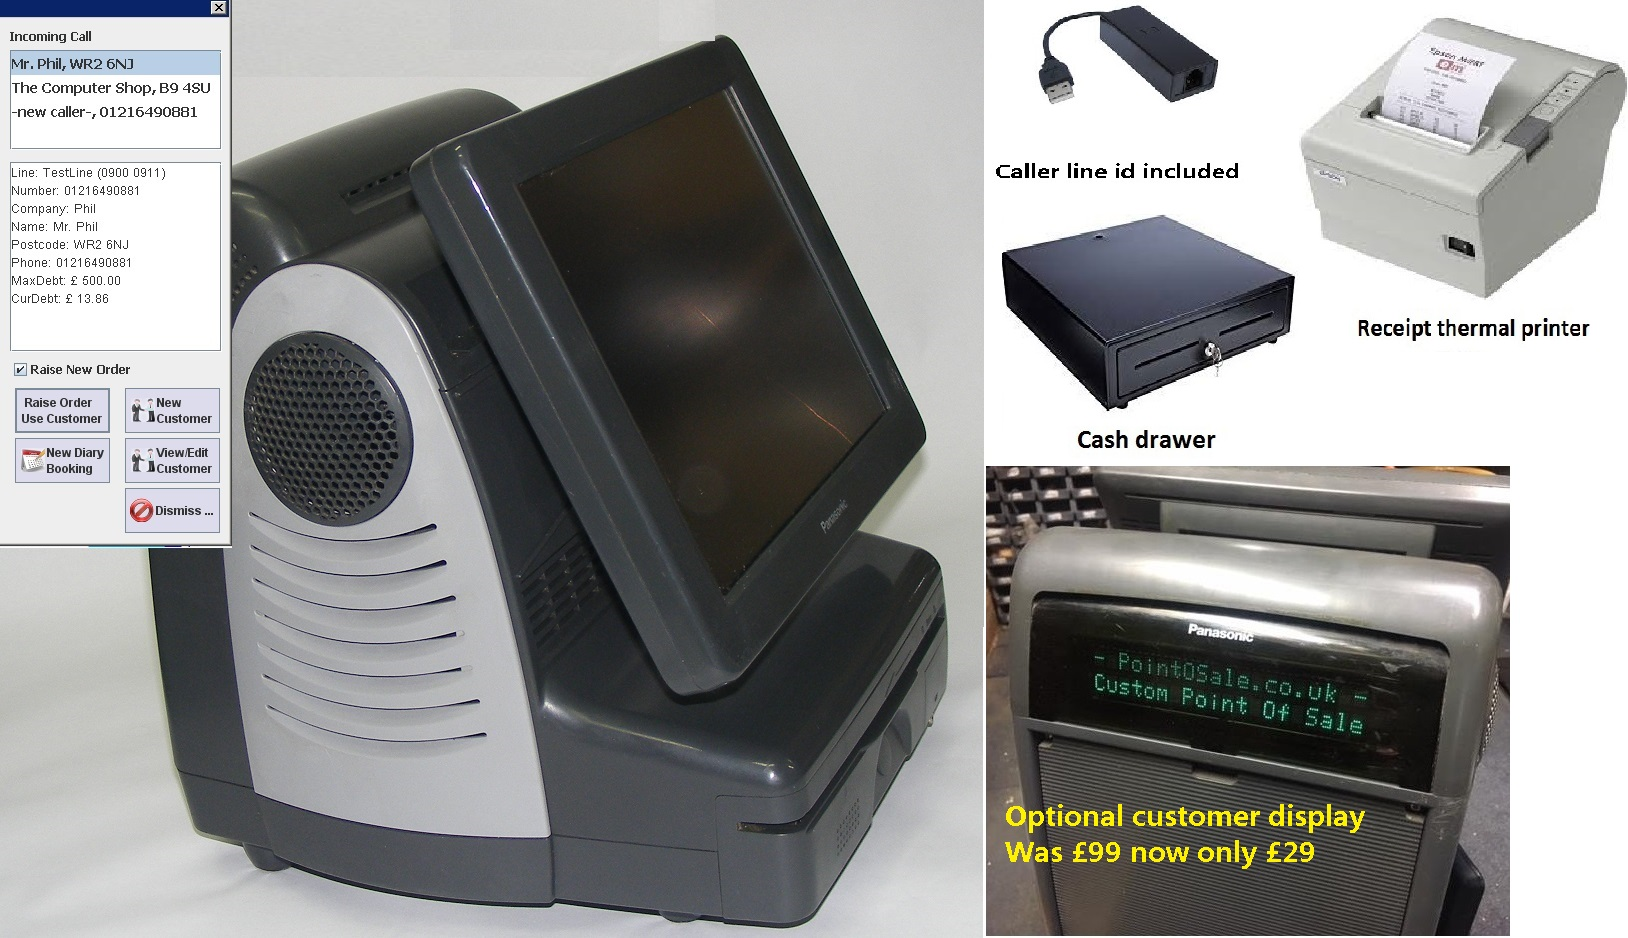 12.1 Epos systems printer caller line id postcode & distance